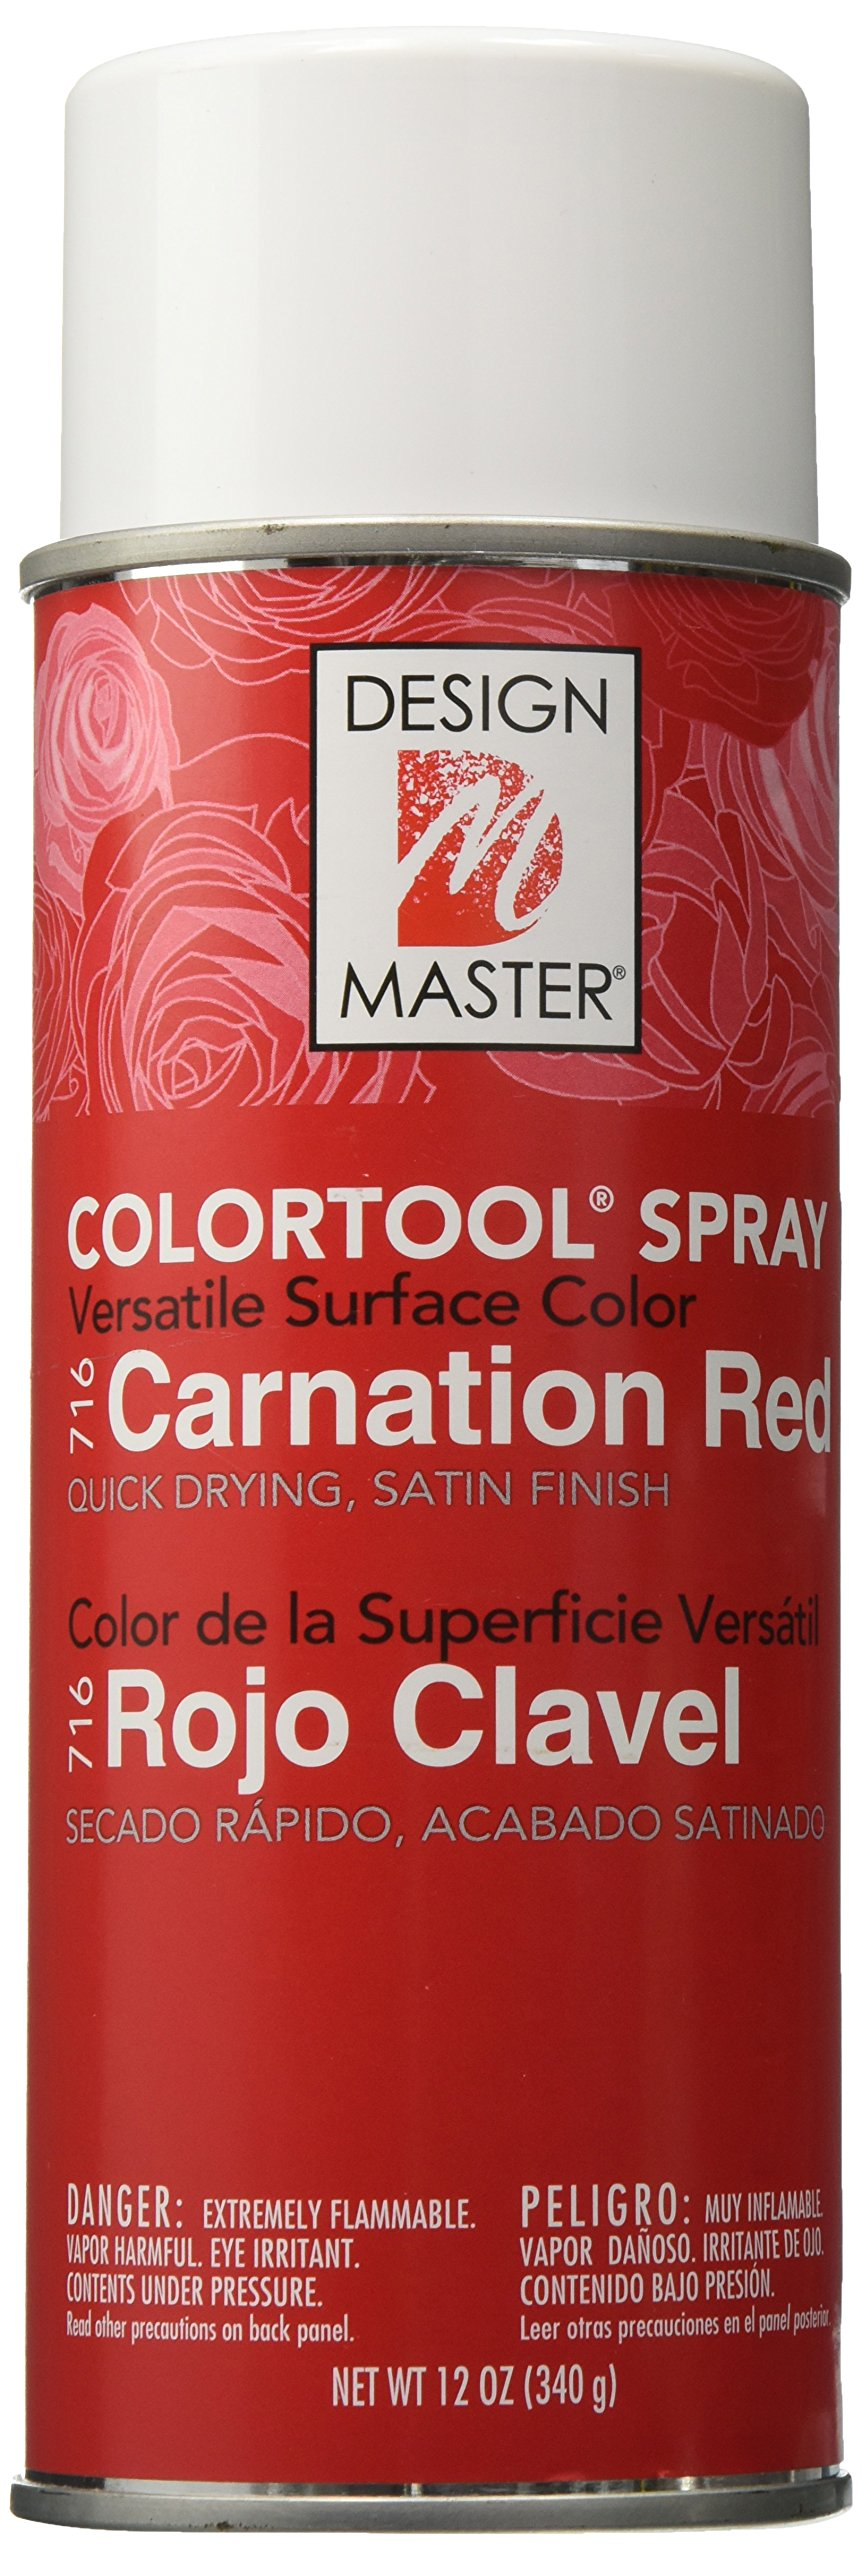 Design Master Colortool Floral Spray Paint 12 Ounces Carnation Red by Design Master